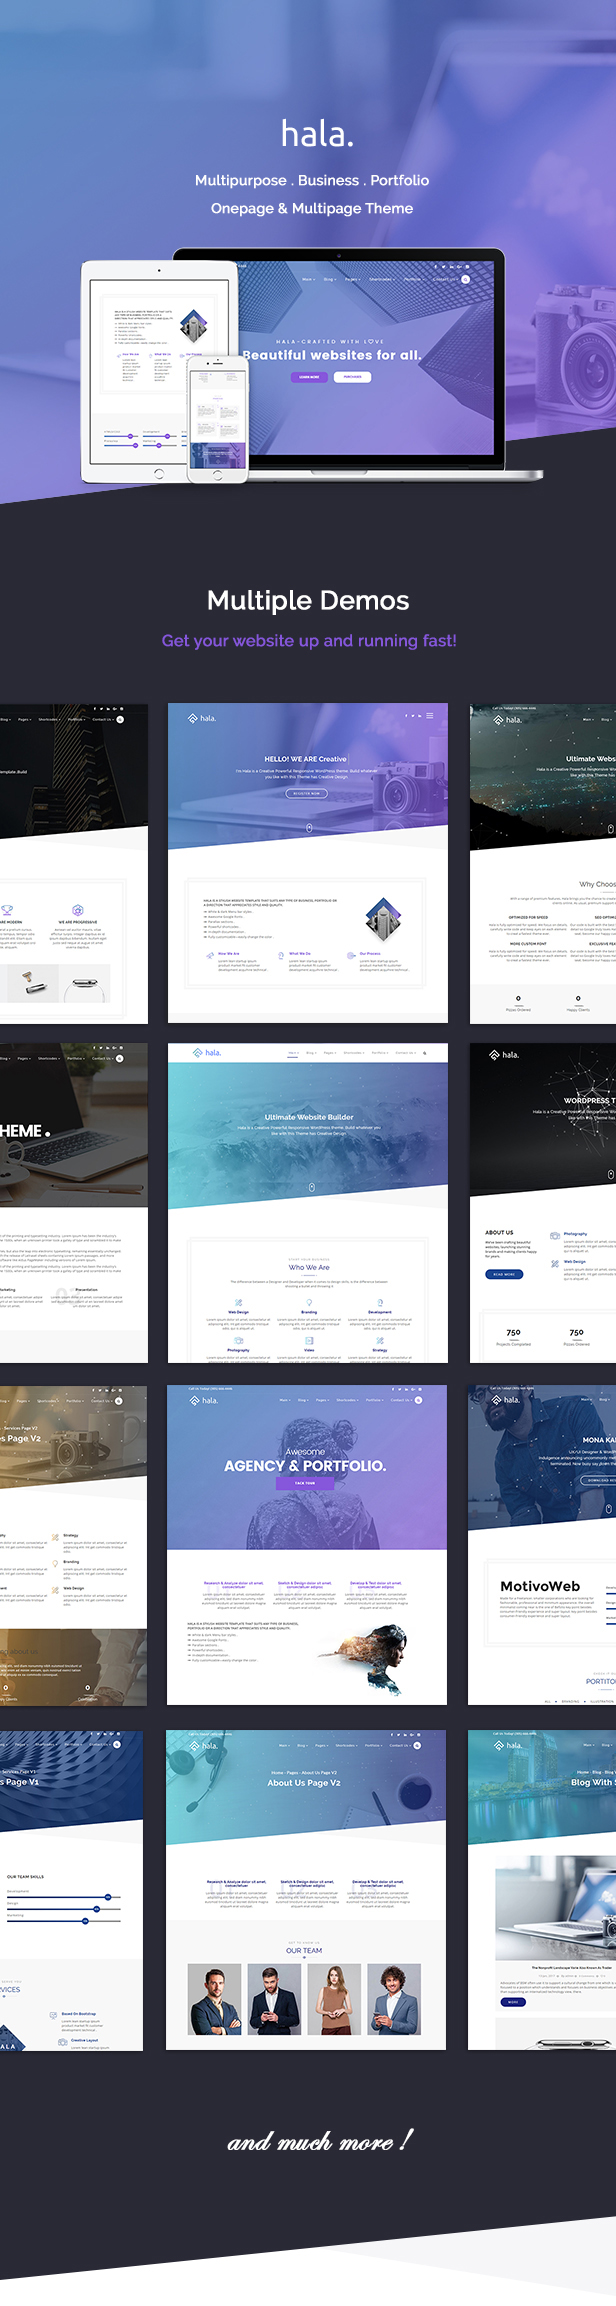 Hala Creative - Mehrzweck-WordPress-Template